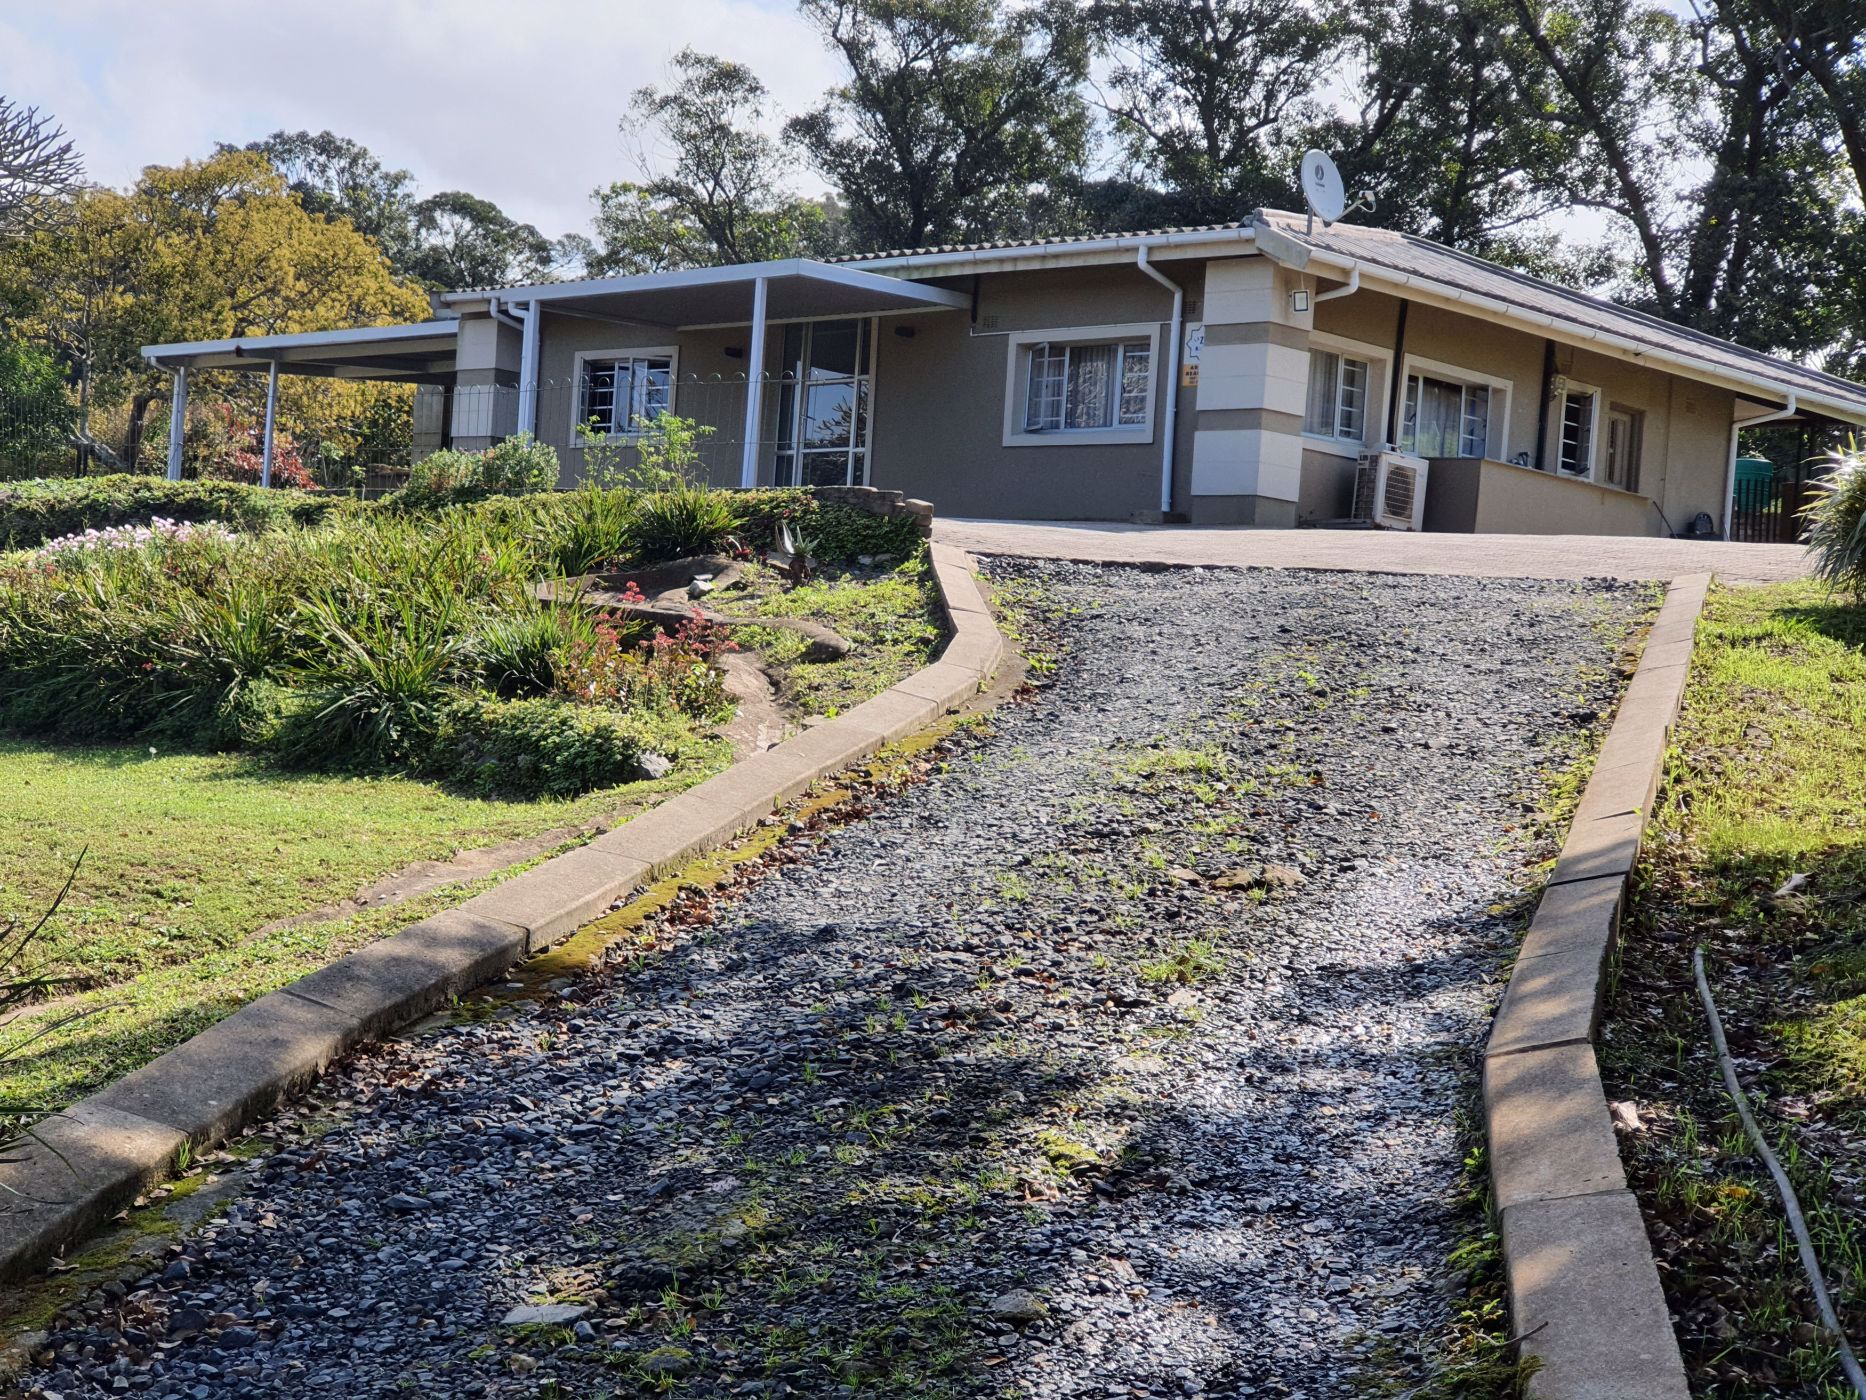 4 bedroom house for sale in Sea Park (Port Shepstone)